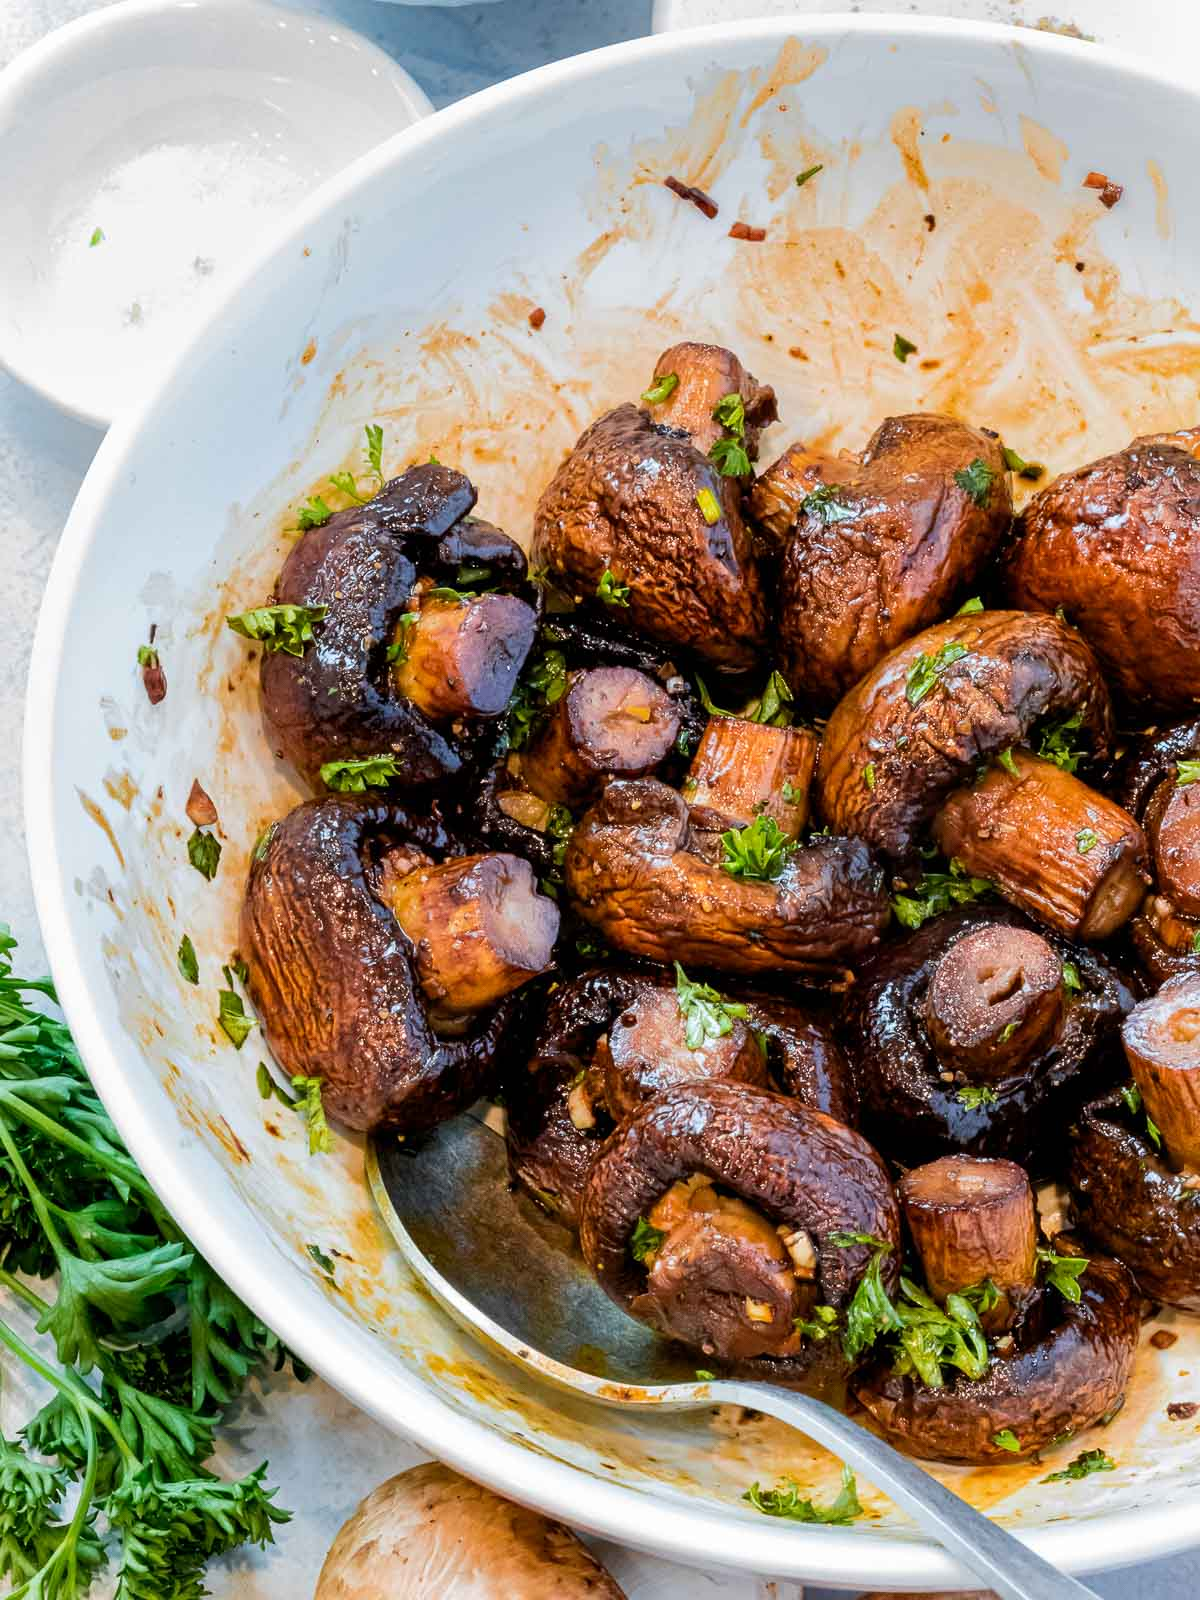 oven roasted mushrooms with garlic and soy sauce sprinkled with parsley in a white bowl with a metal spoon